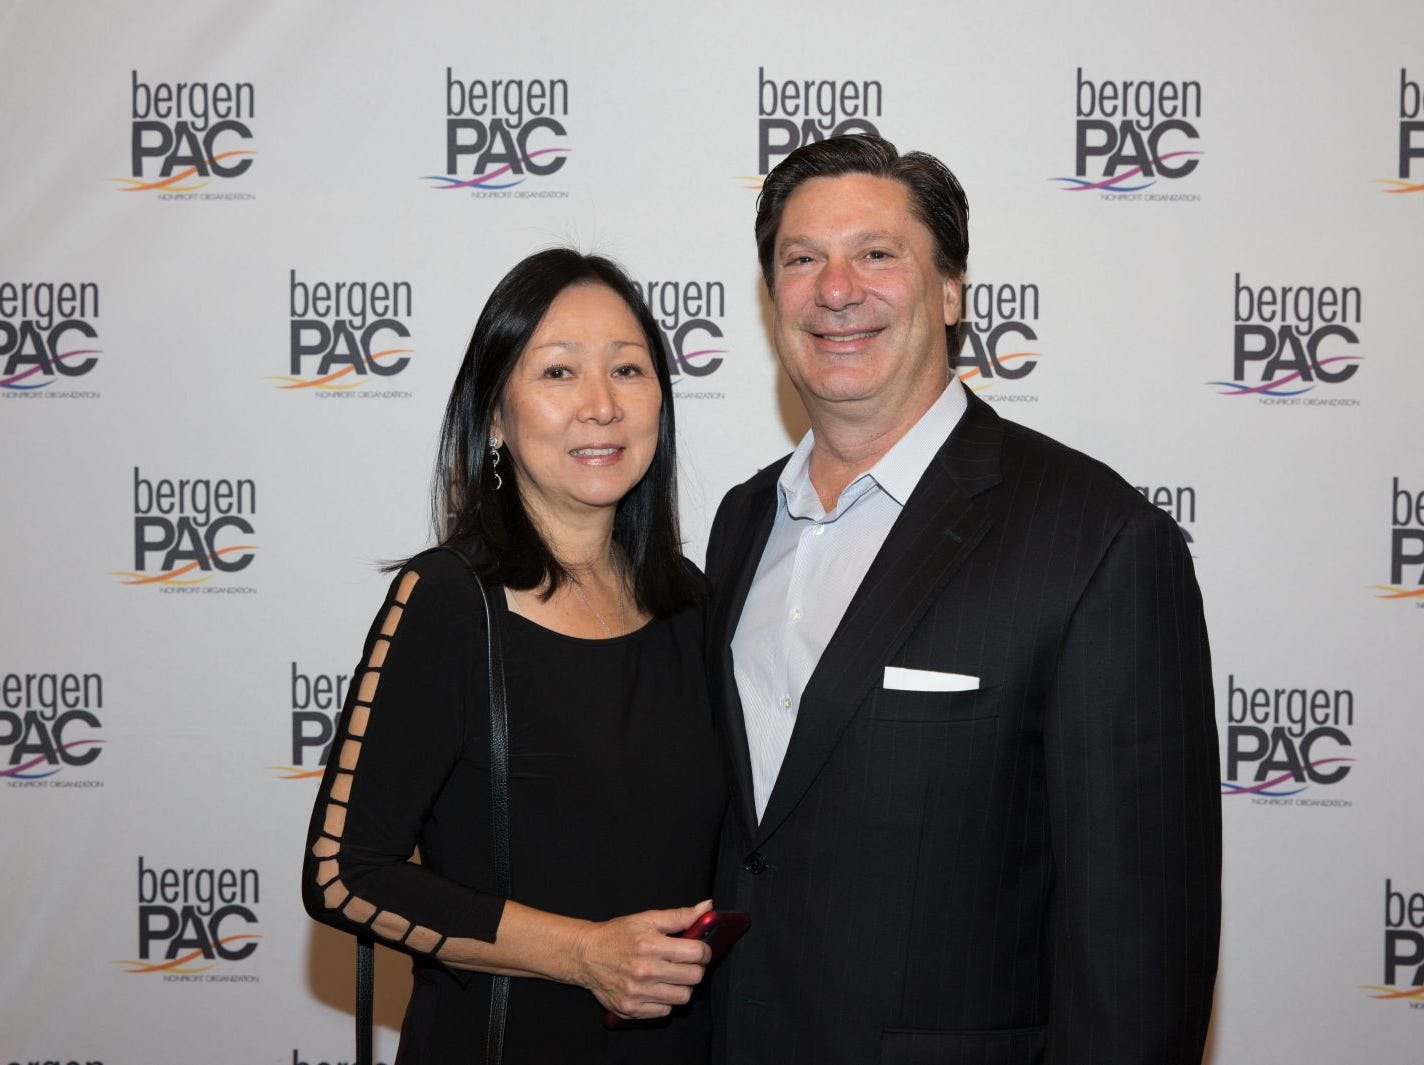 Edmondo and Miyako Schwartz. BergenPAC held its annual fall gala featuring John Fogerty in Englewood. This year's honoree was Fernando Garip, from Wilmington Trust and M&T Bank. 11/08/2018